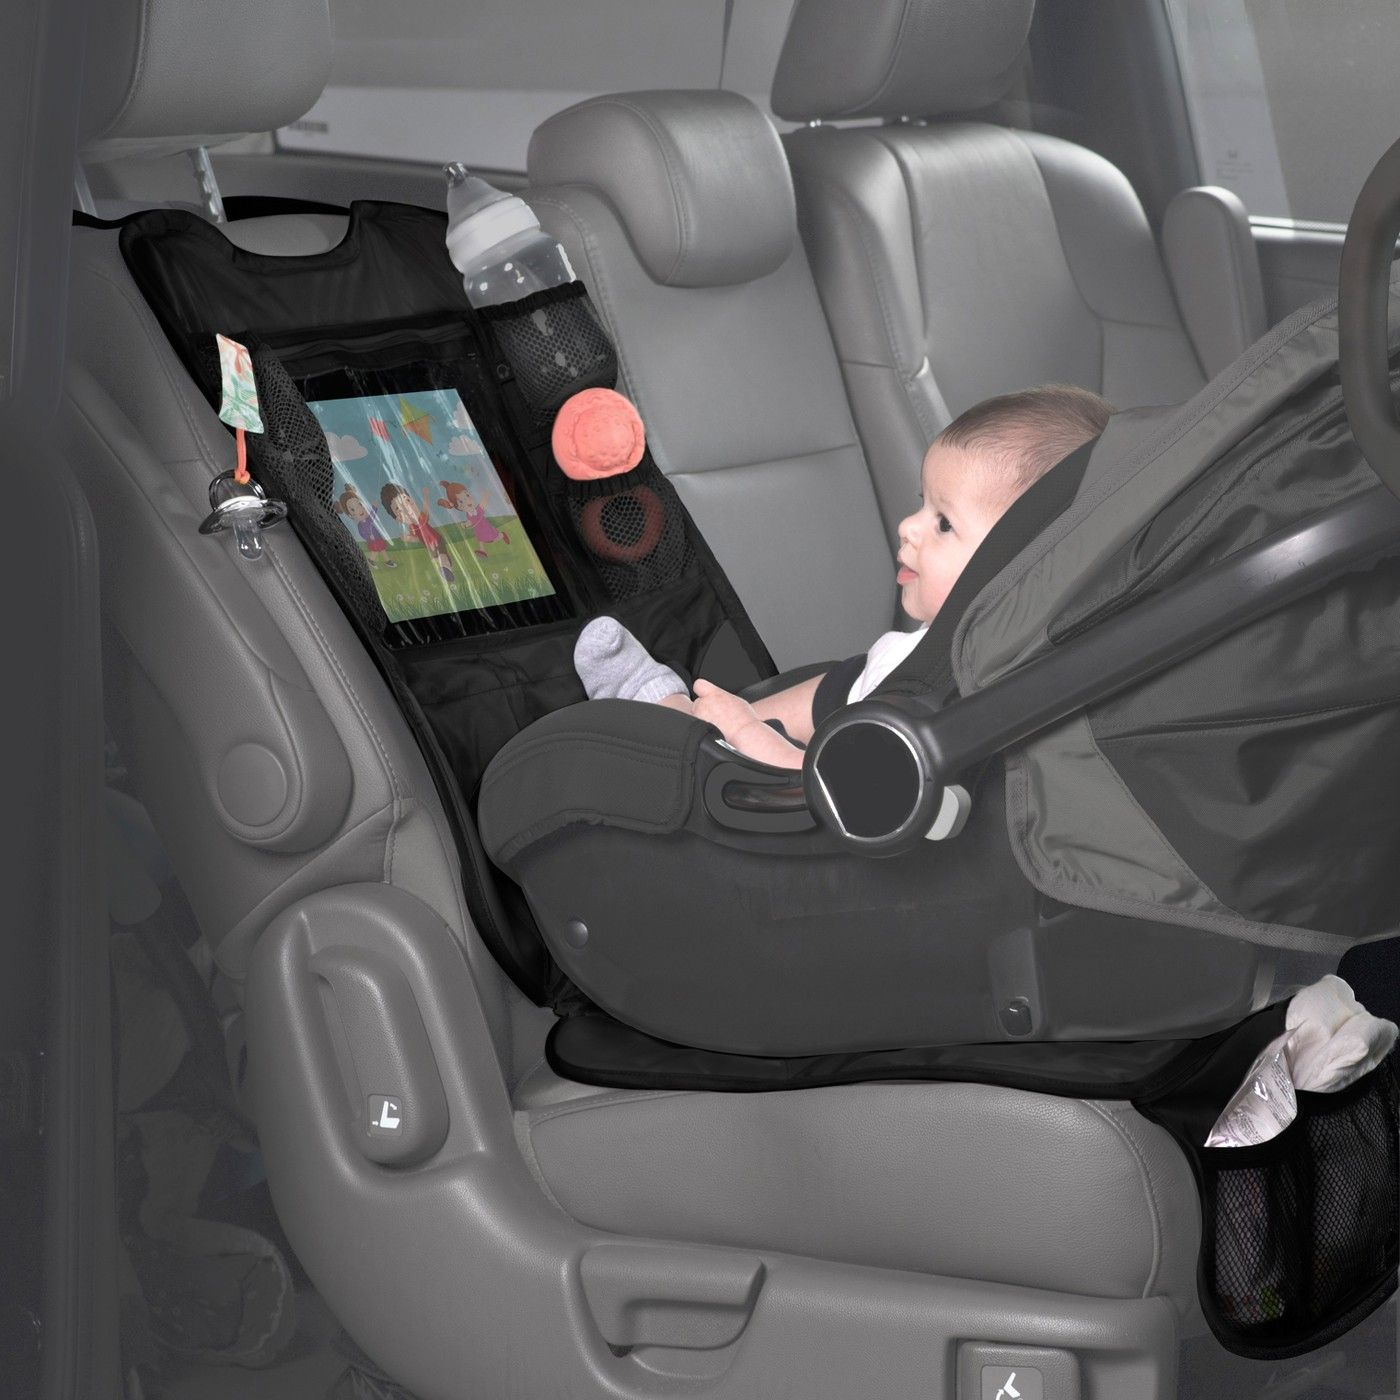 Lulyboo Baby Auto Seat Protector And Carseat Organizer With Clear Device Pocket Baby Life Hacks Baby Supplies Baby Car Seats